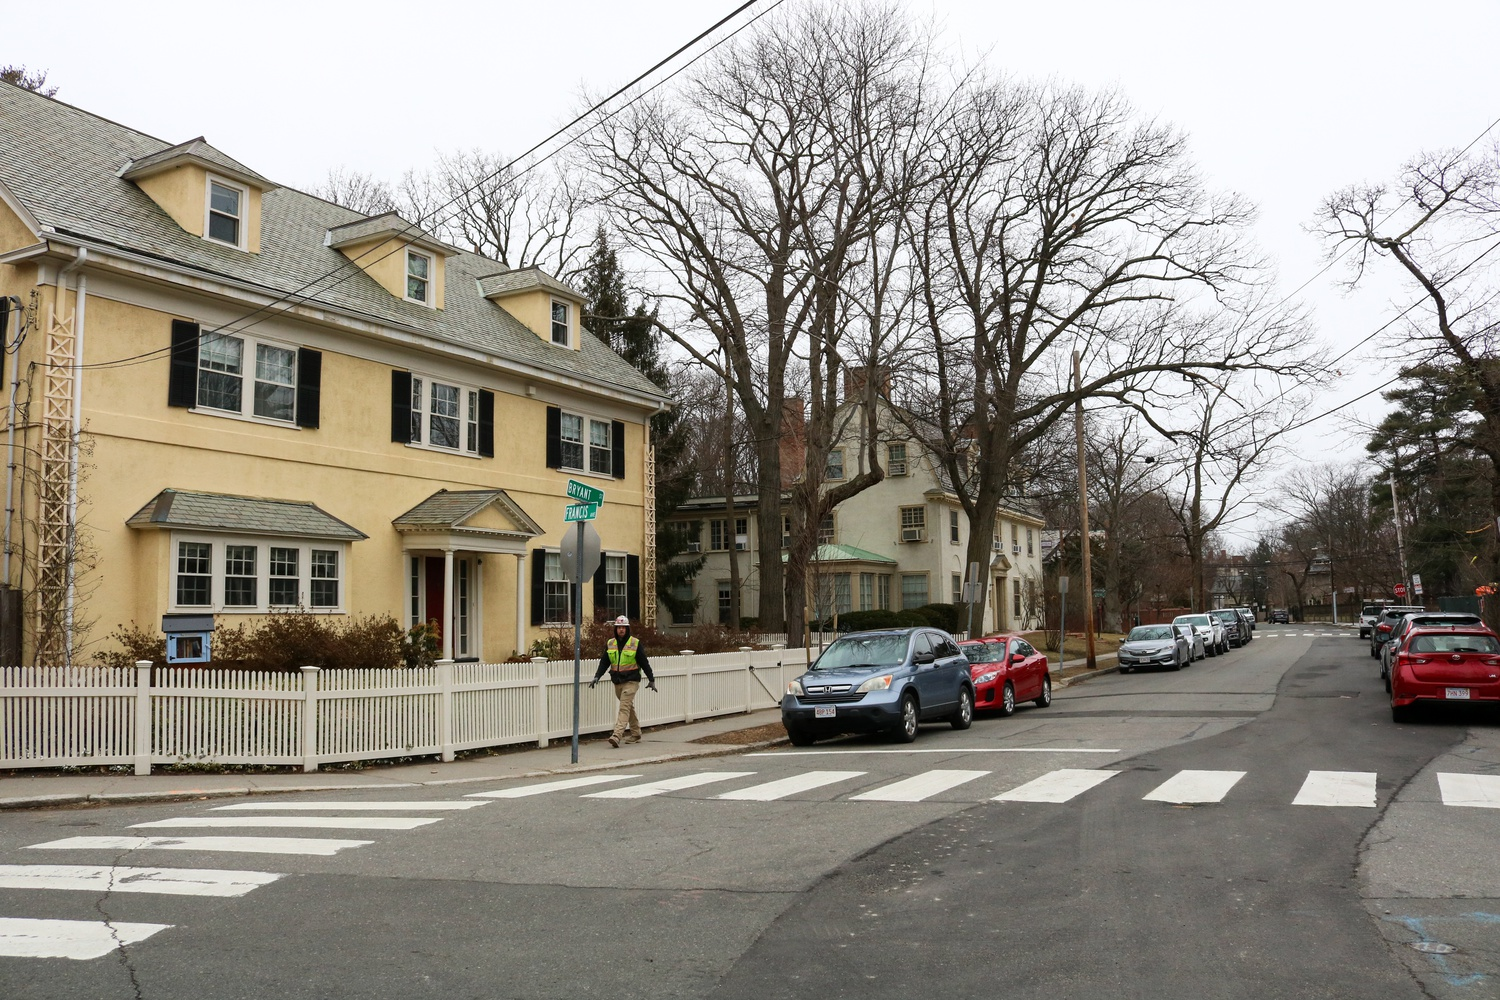 Despite precipitous local real estate prices, a number of upperclassmen have chosen to take up residence in the Cambridge or Greater Boston area this fall.